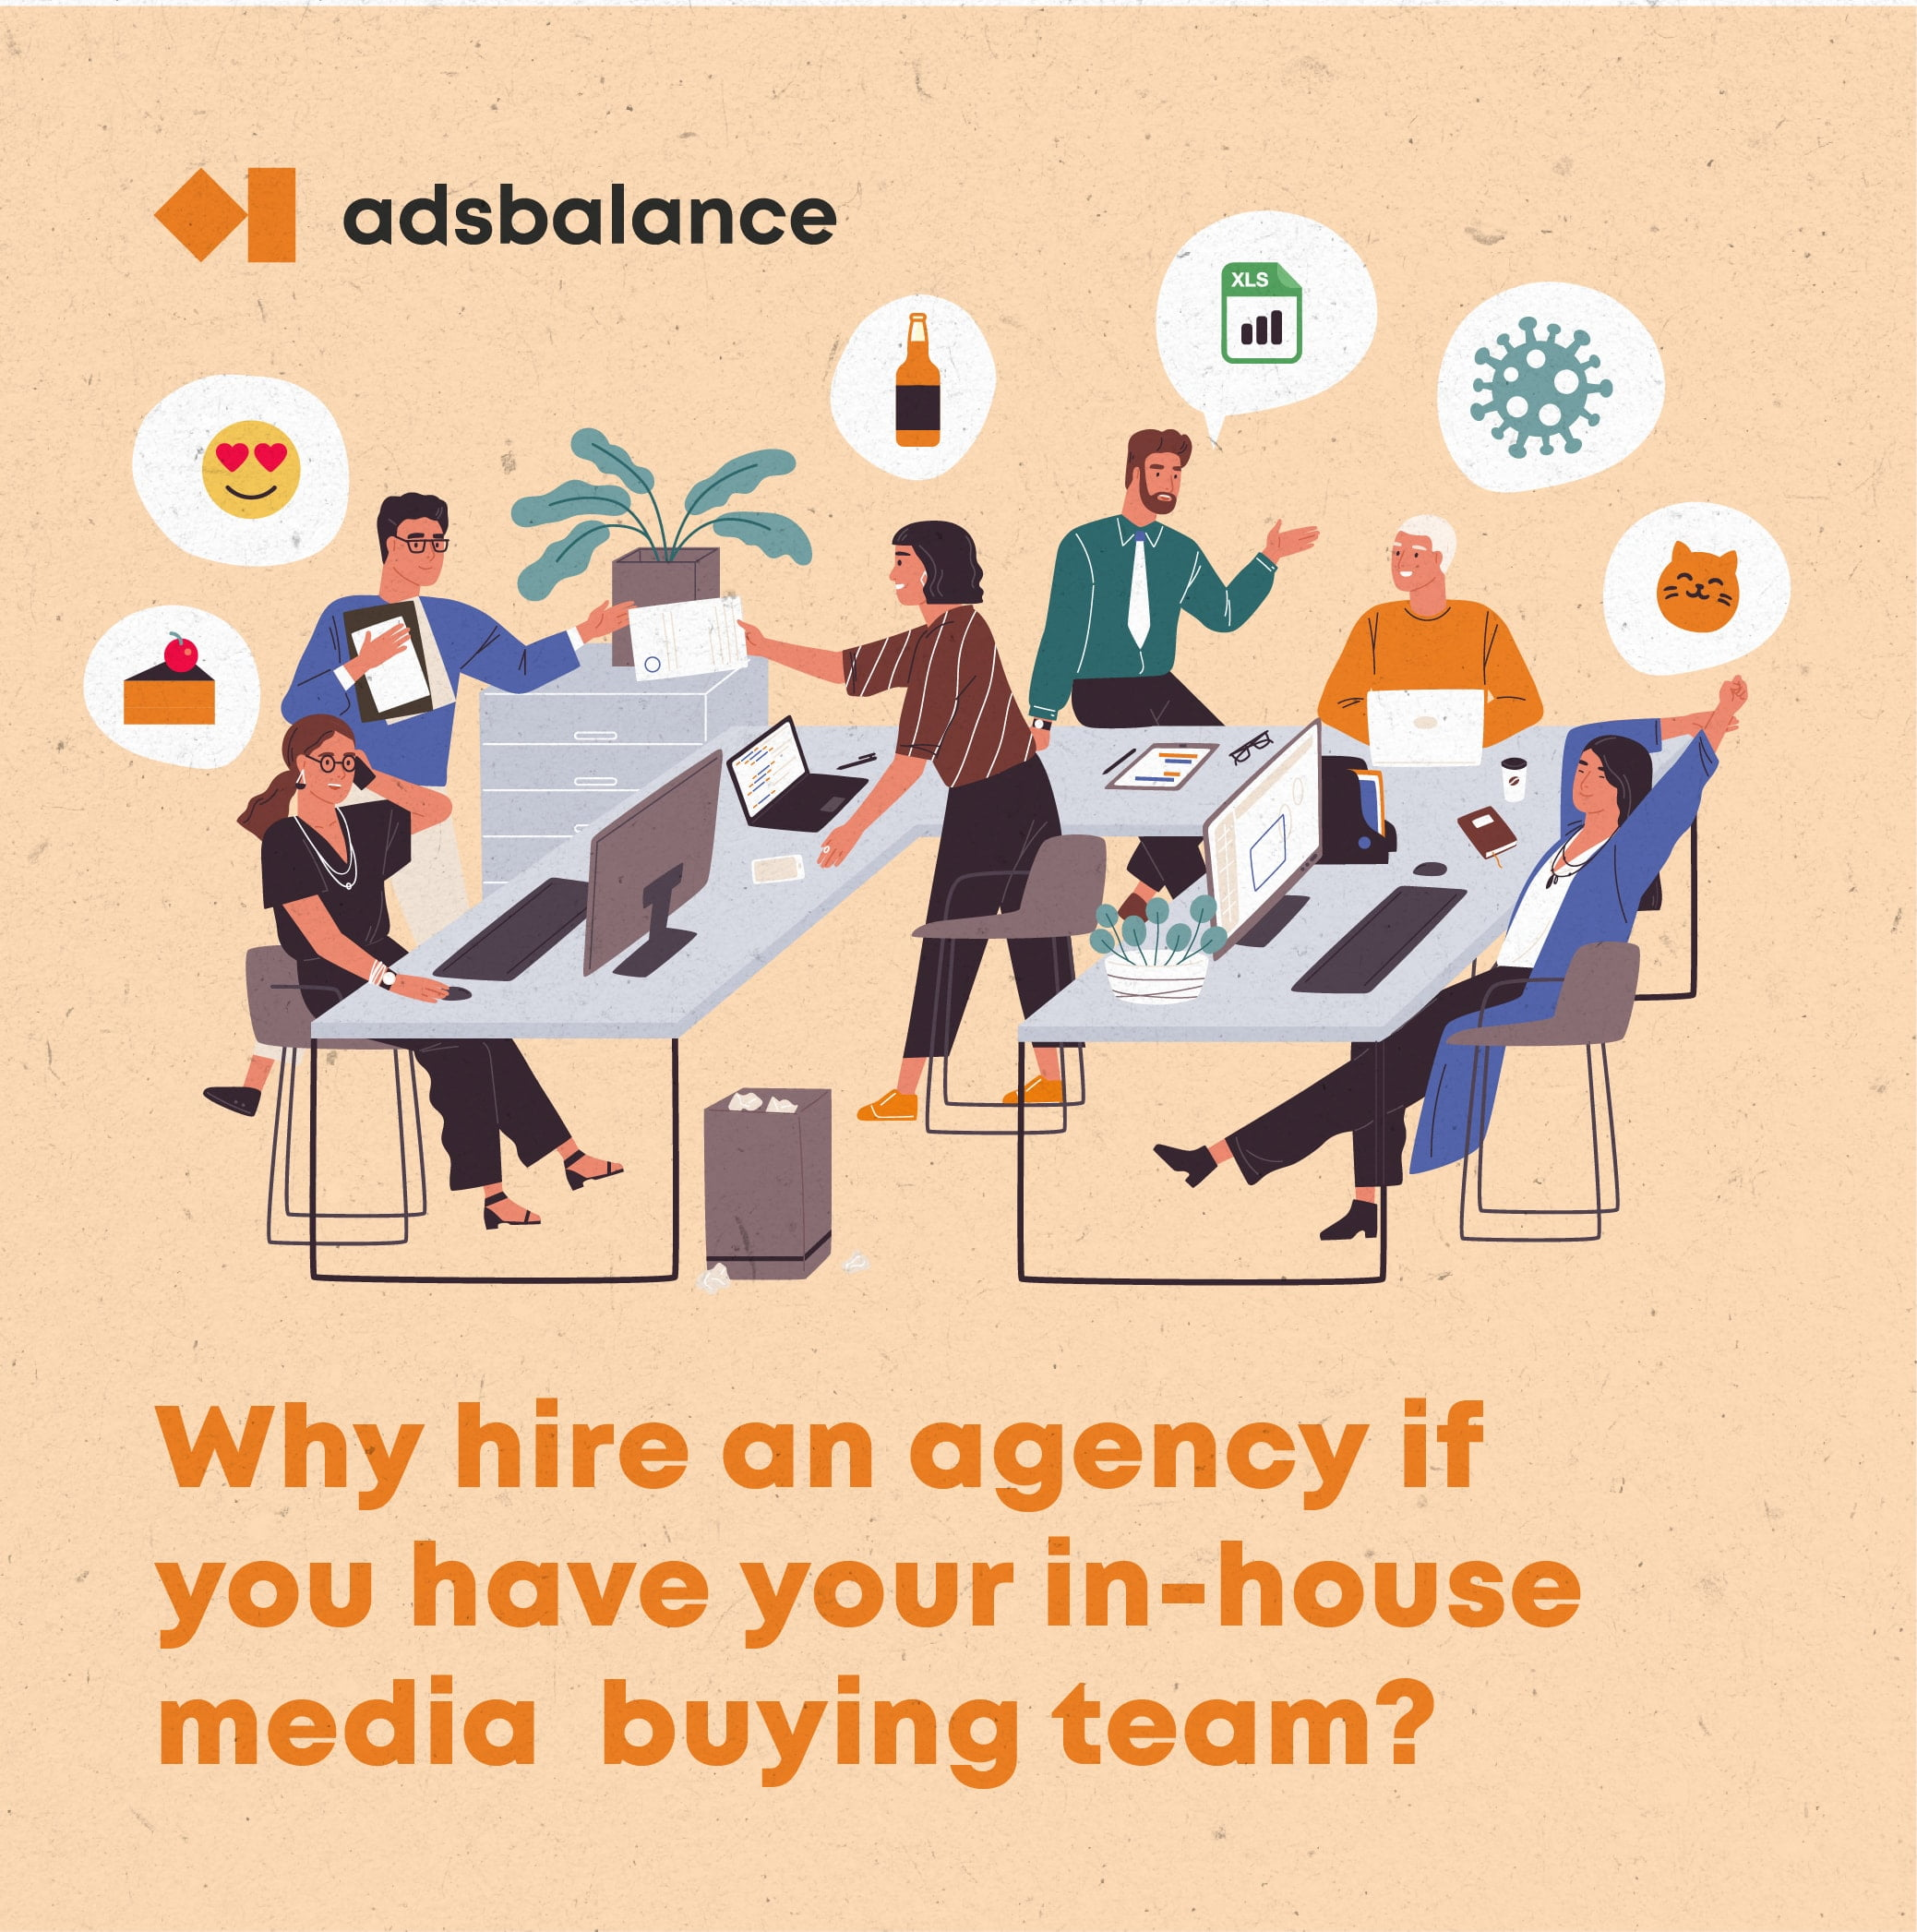 In-house vs. outsource: Why hire an agency if you have your own media buying team?